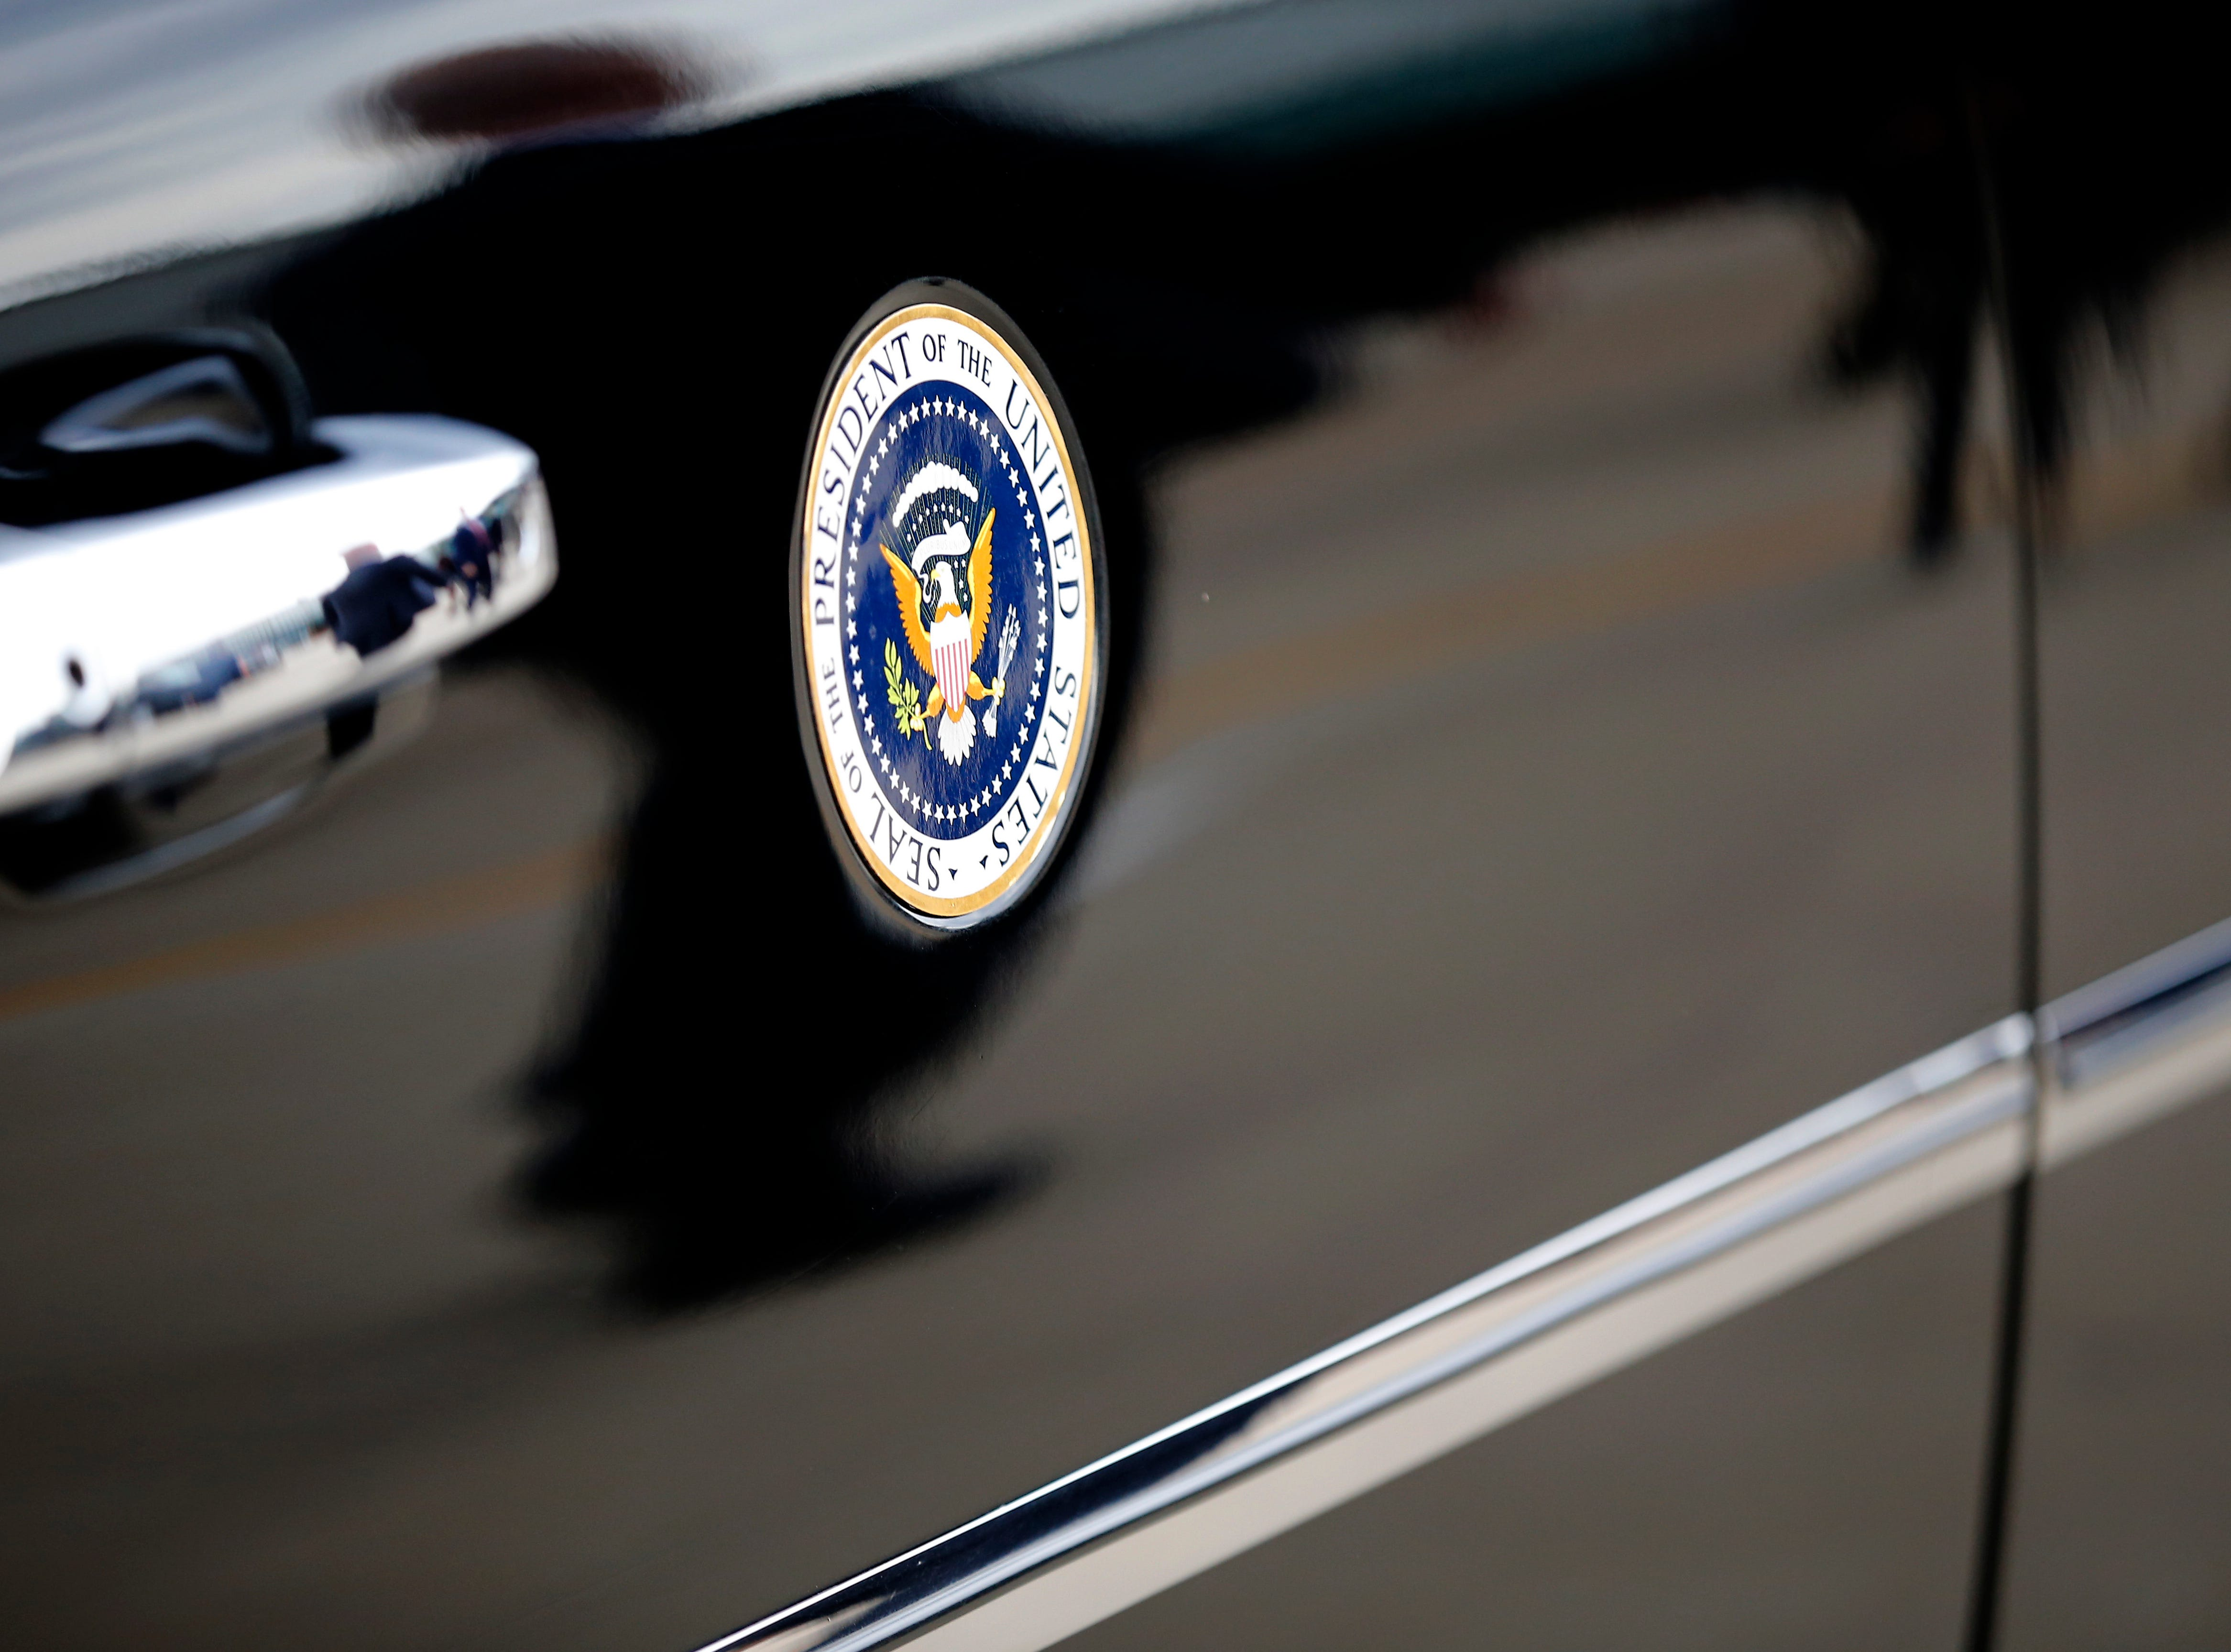 The presidential limousine moves into position alongside President Donald Trump as he talks with a gathering of supporters after landing at Lunken Airport in Cincinnati on Friday, Oct. 12, 2018. President Trump visited the Cincinnati area for a MAGA Rally at the Warren County Fair Grounds in Lebanon, Ohio, Friday night.